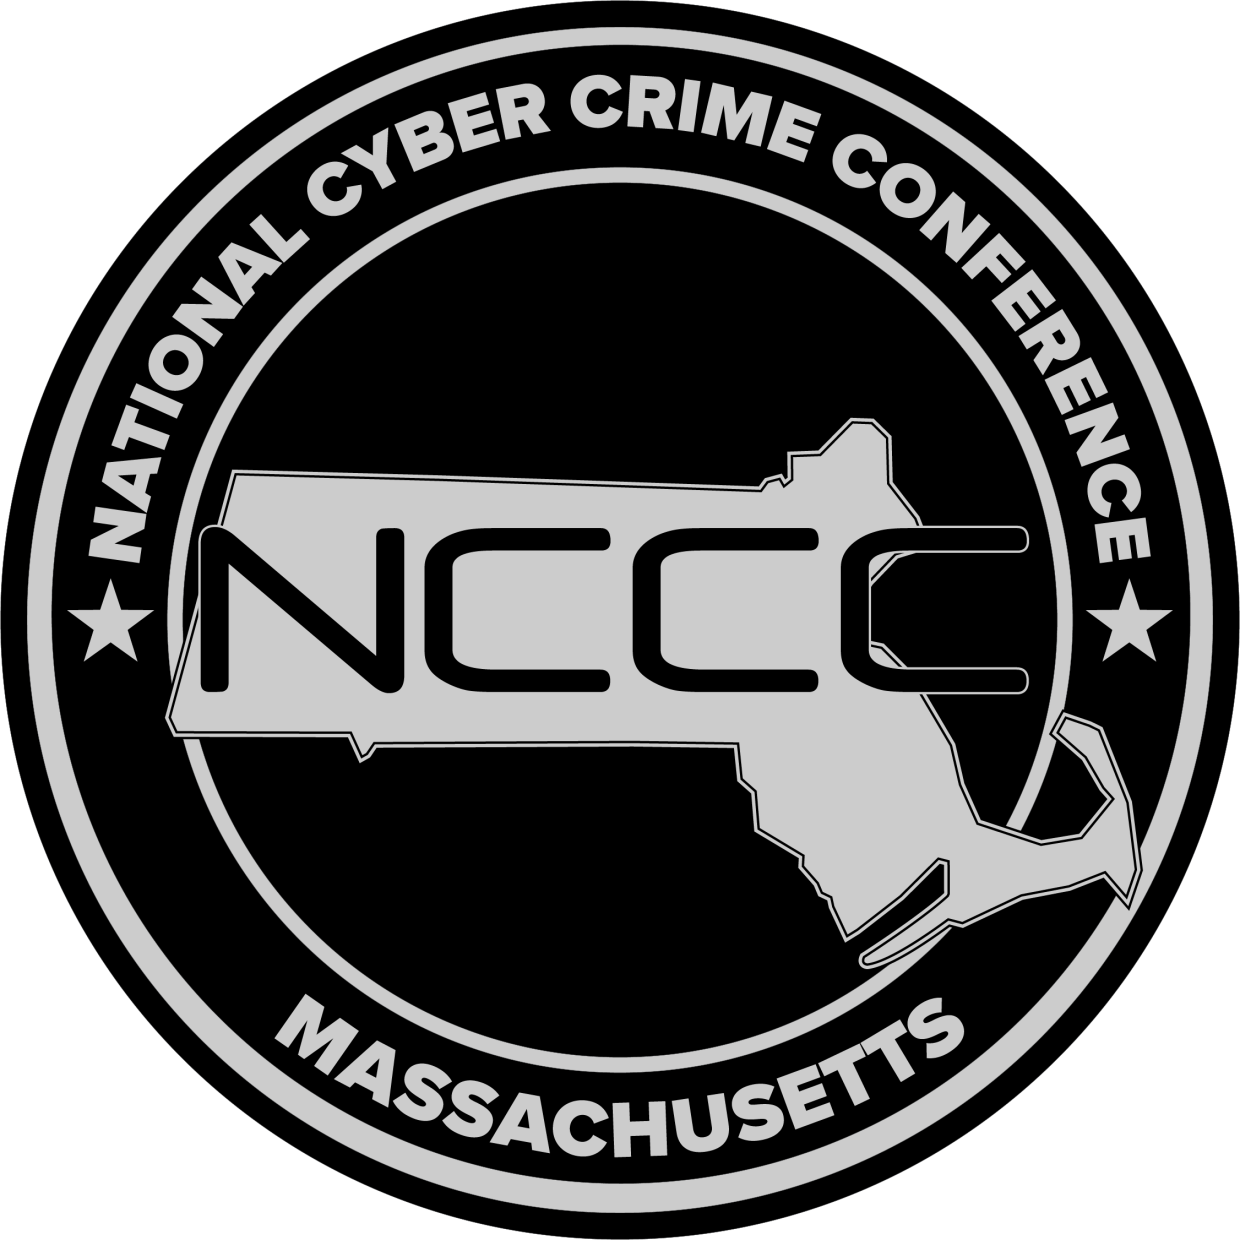 2020 National Cyber Crime Conference Announcement!